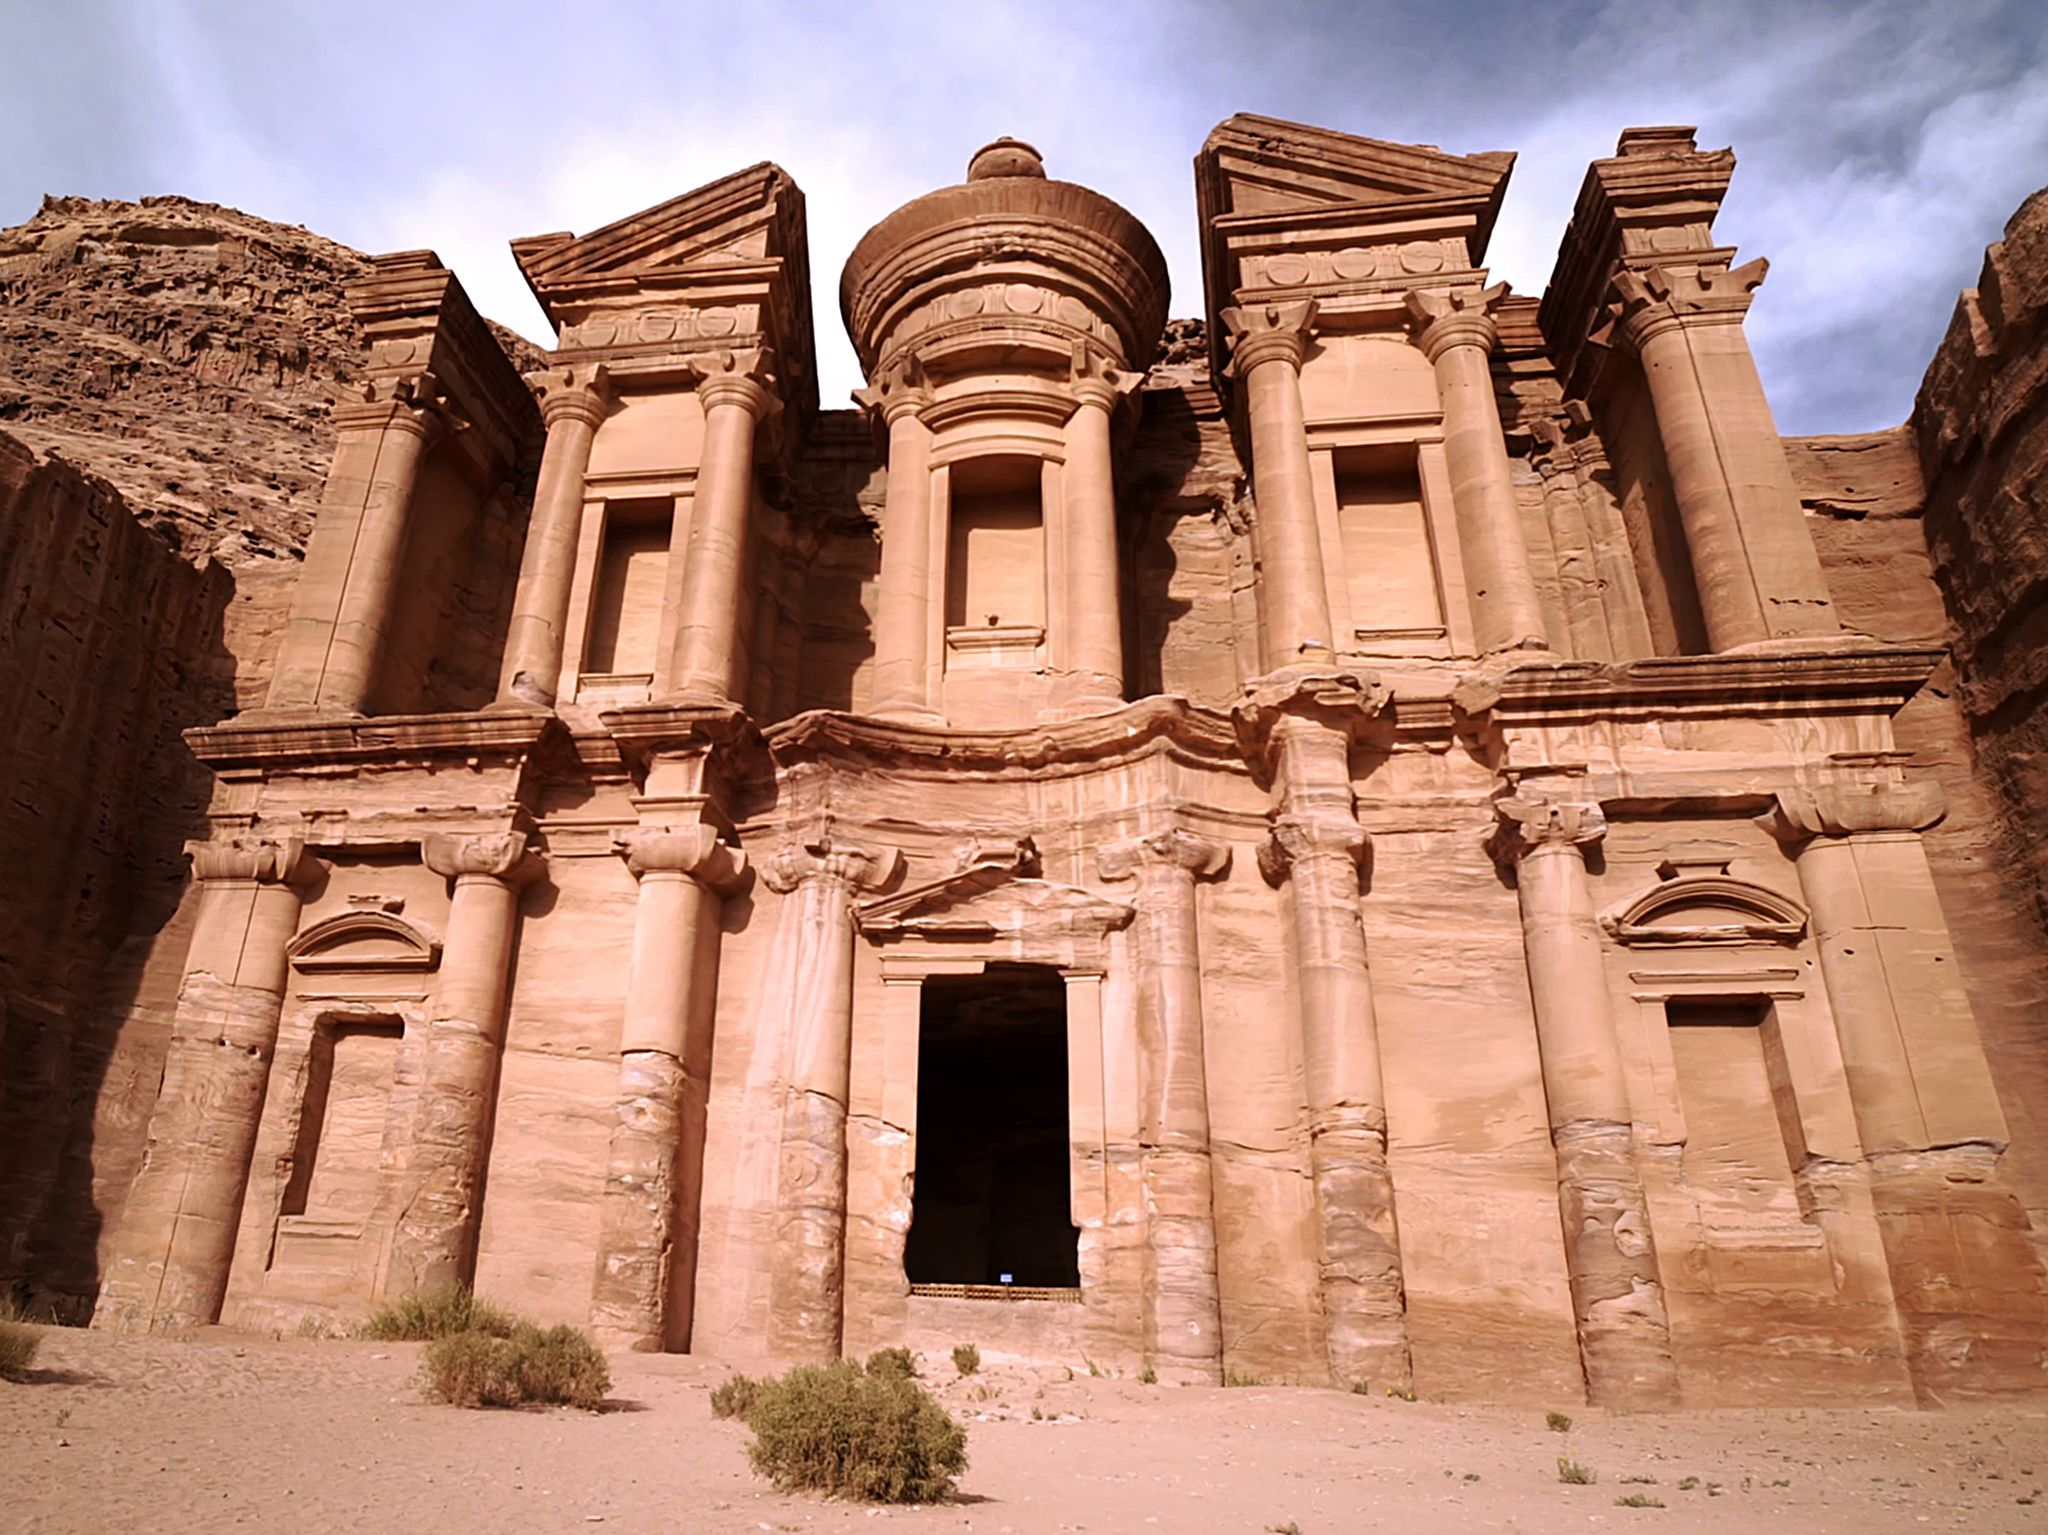 The facade of Ad-Dier, or the Monastery, in the ancient city of Petra. This image is from Petra:... [Photo of the day - September 2019]